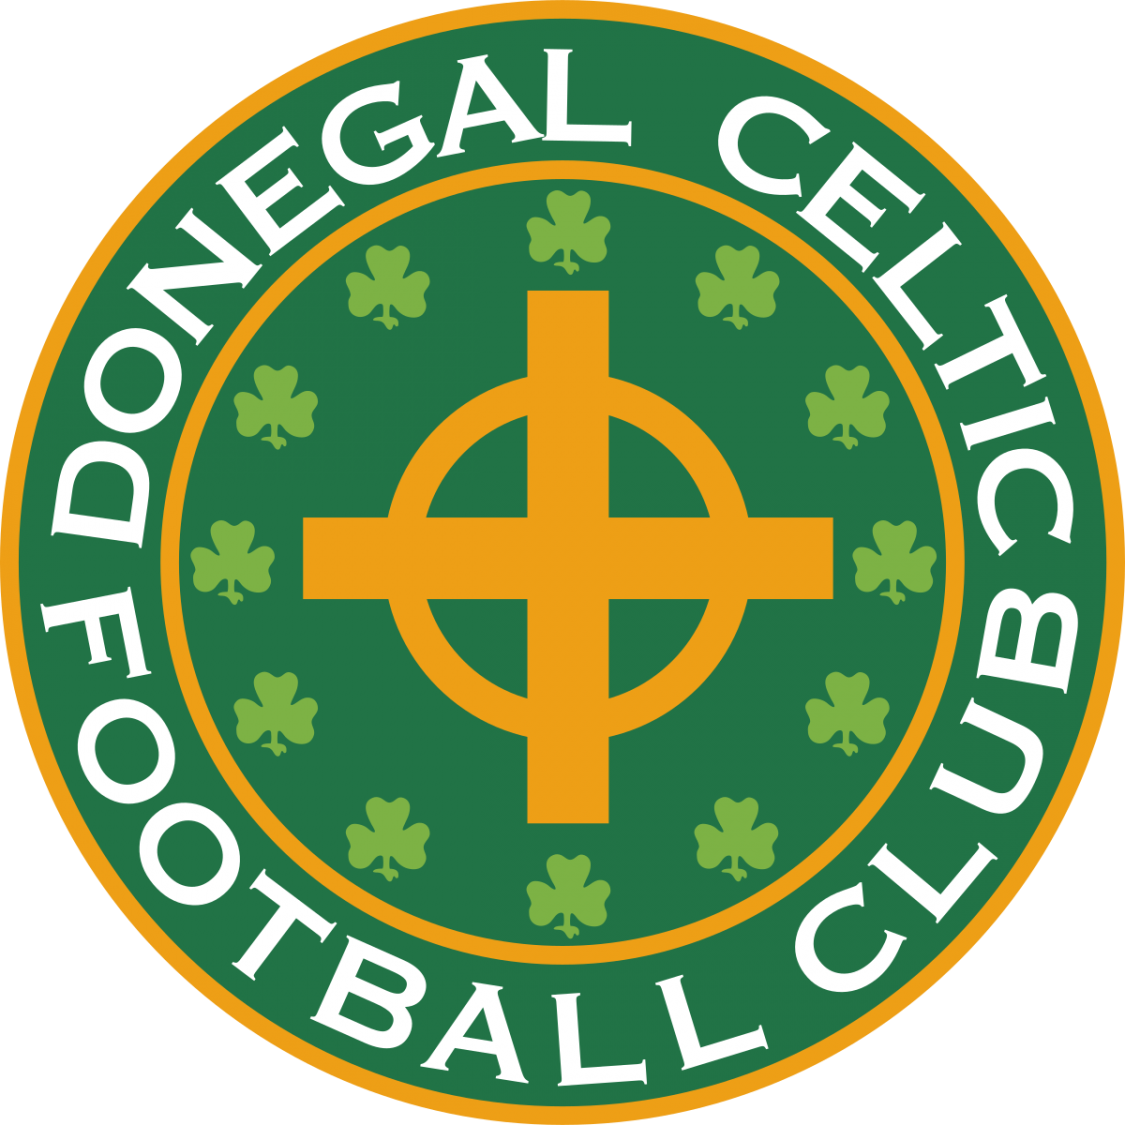 1200px-Donegal_Celtic_FC_logo_svg.thumb.png.28ca5f67ee1f5133be5c64ae1a7783a4.png